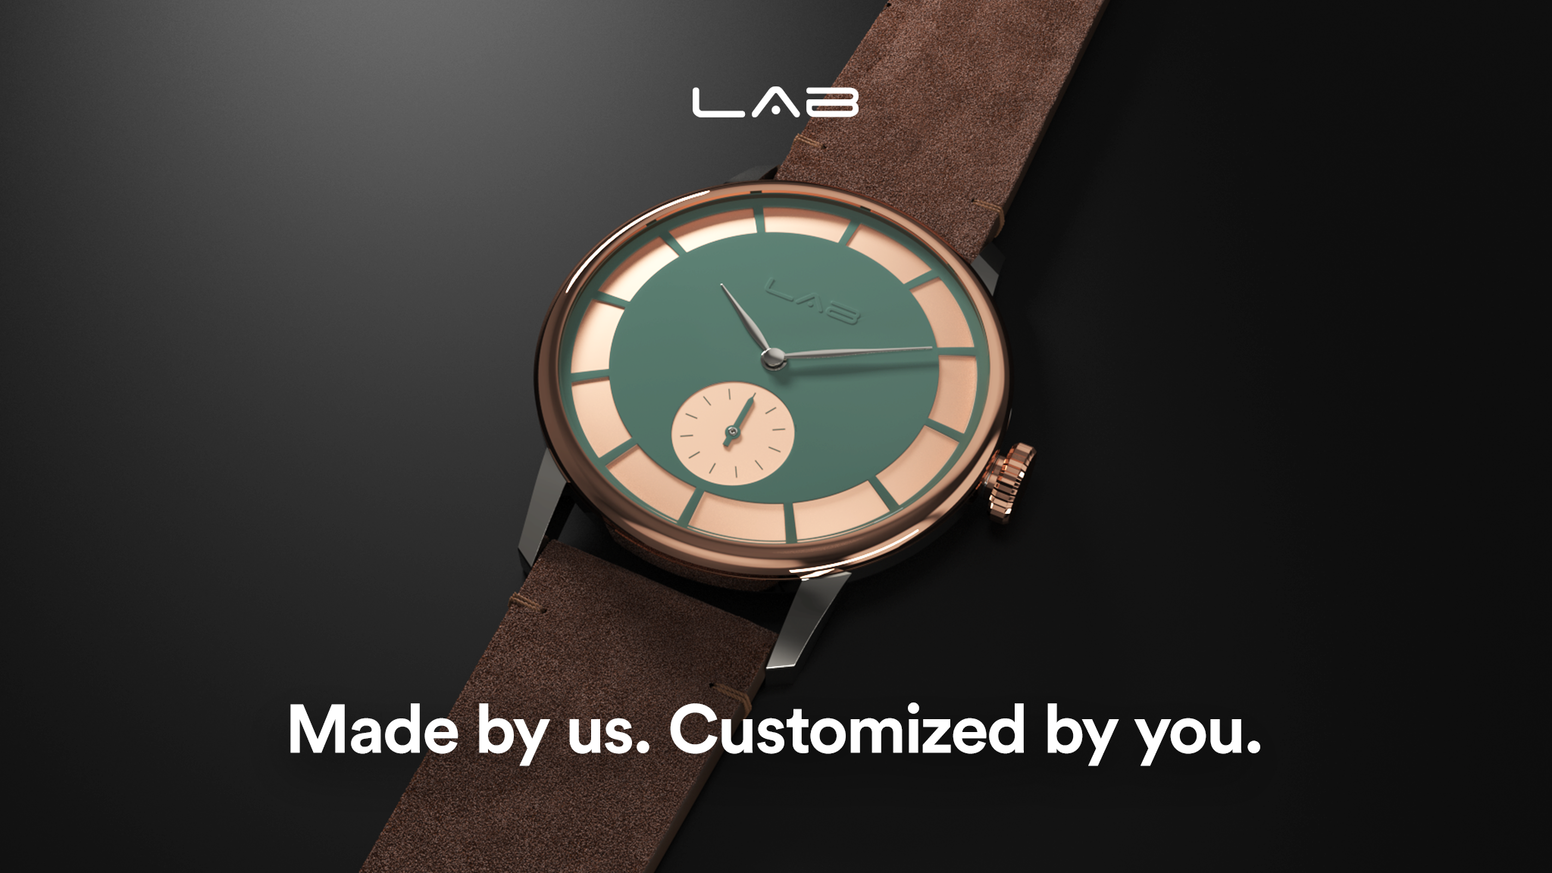 Your chance to customize a watch that's one of a kind. Available now on Indiegogo InDemand.